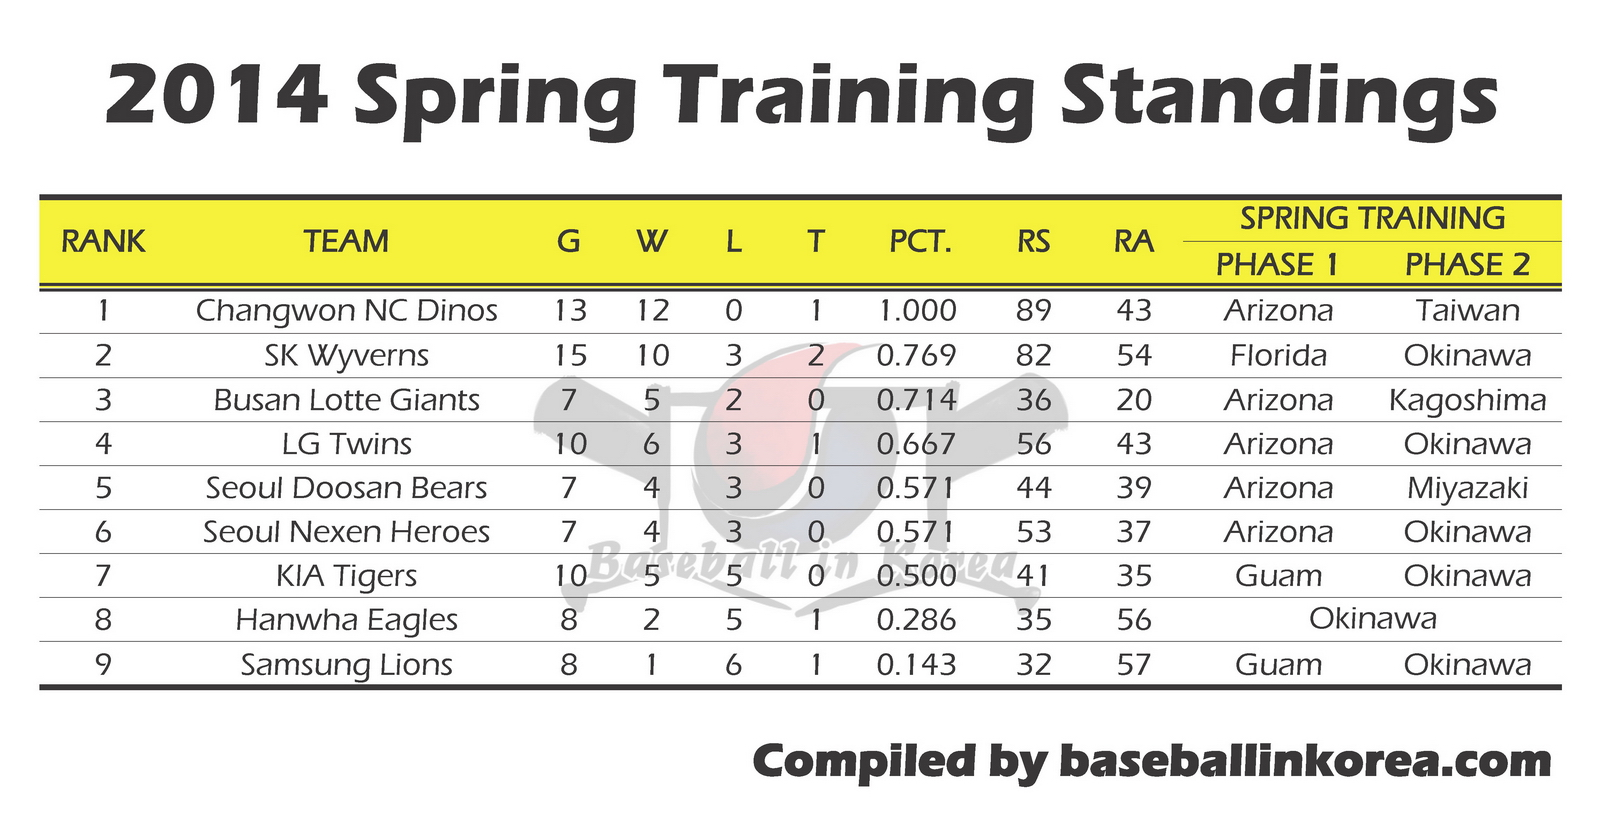 2014 Spring Training Standings